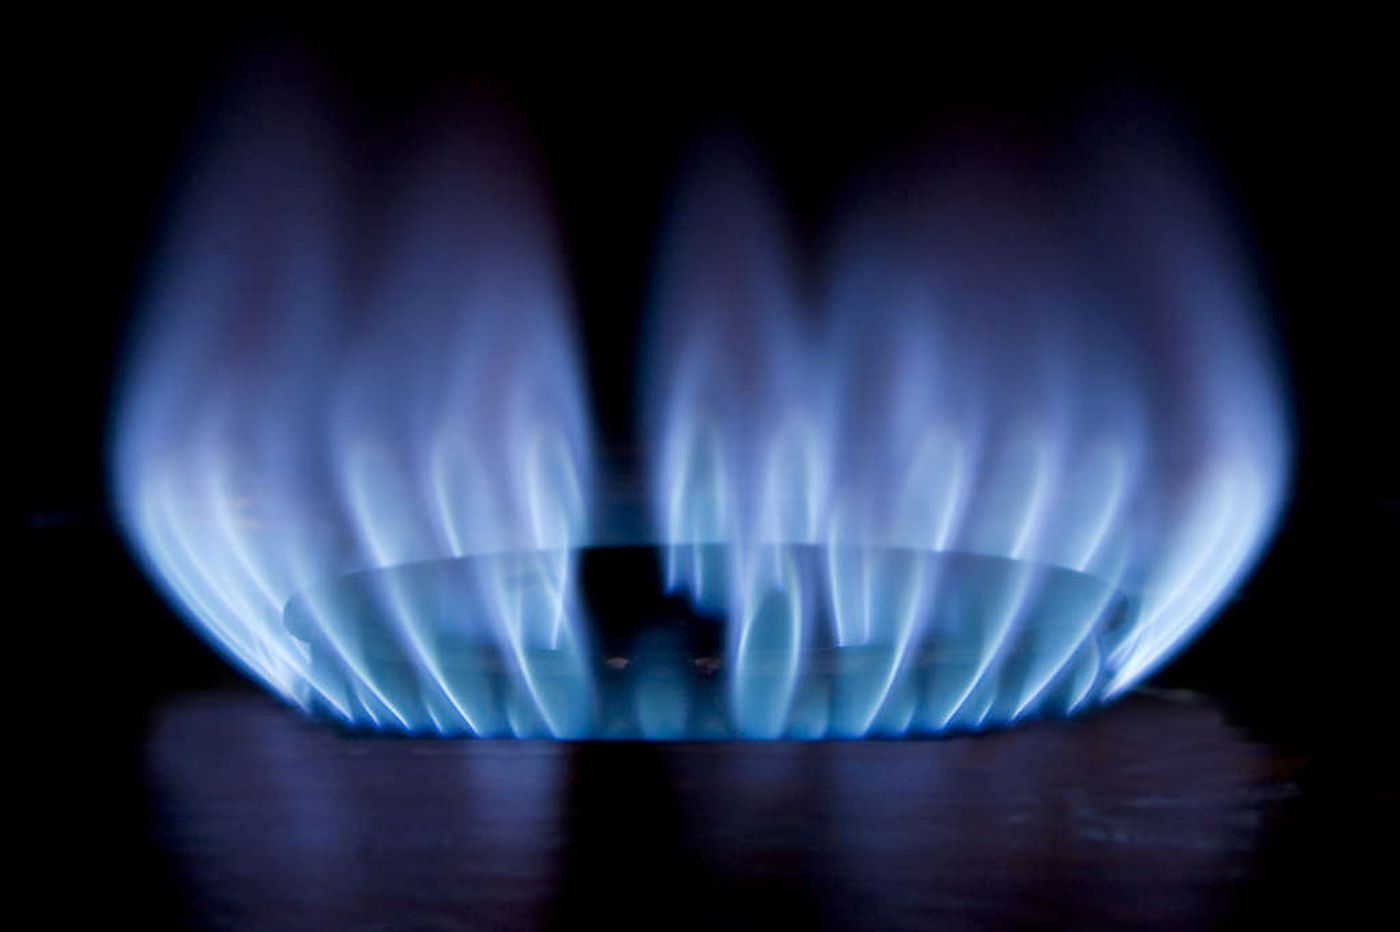 One city just banned new natural gas hookups to save the planet. Could Philly follow suit?